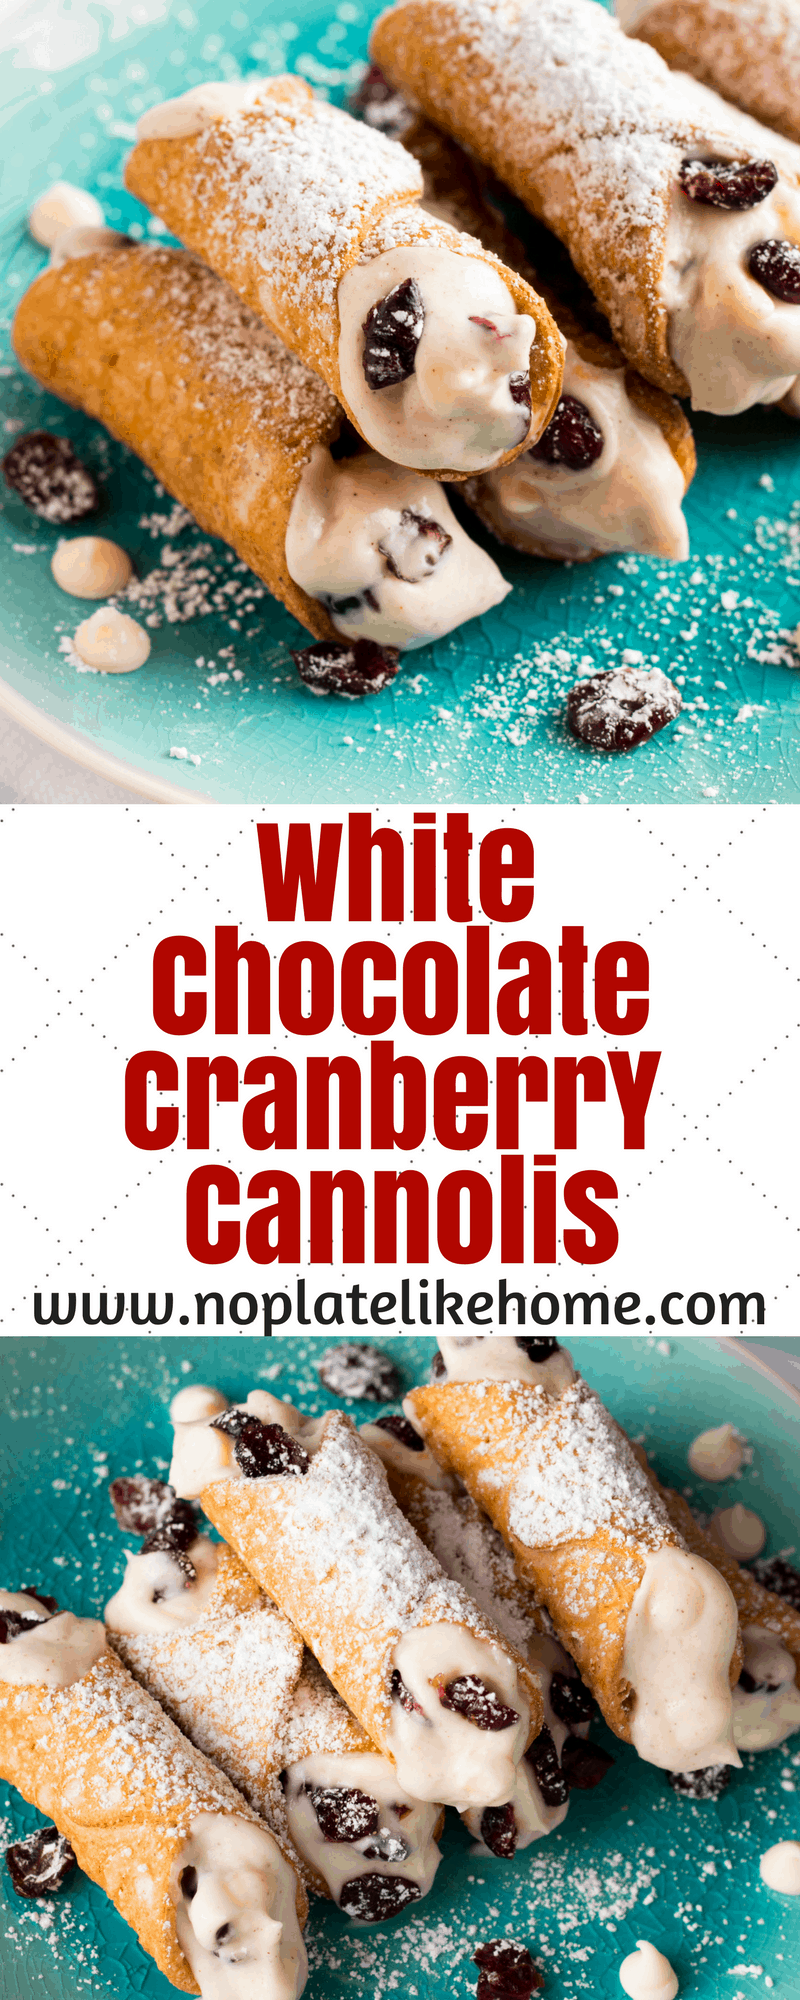 White Chocolate Cranberry Cannoli